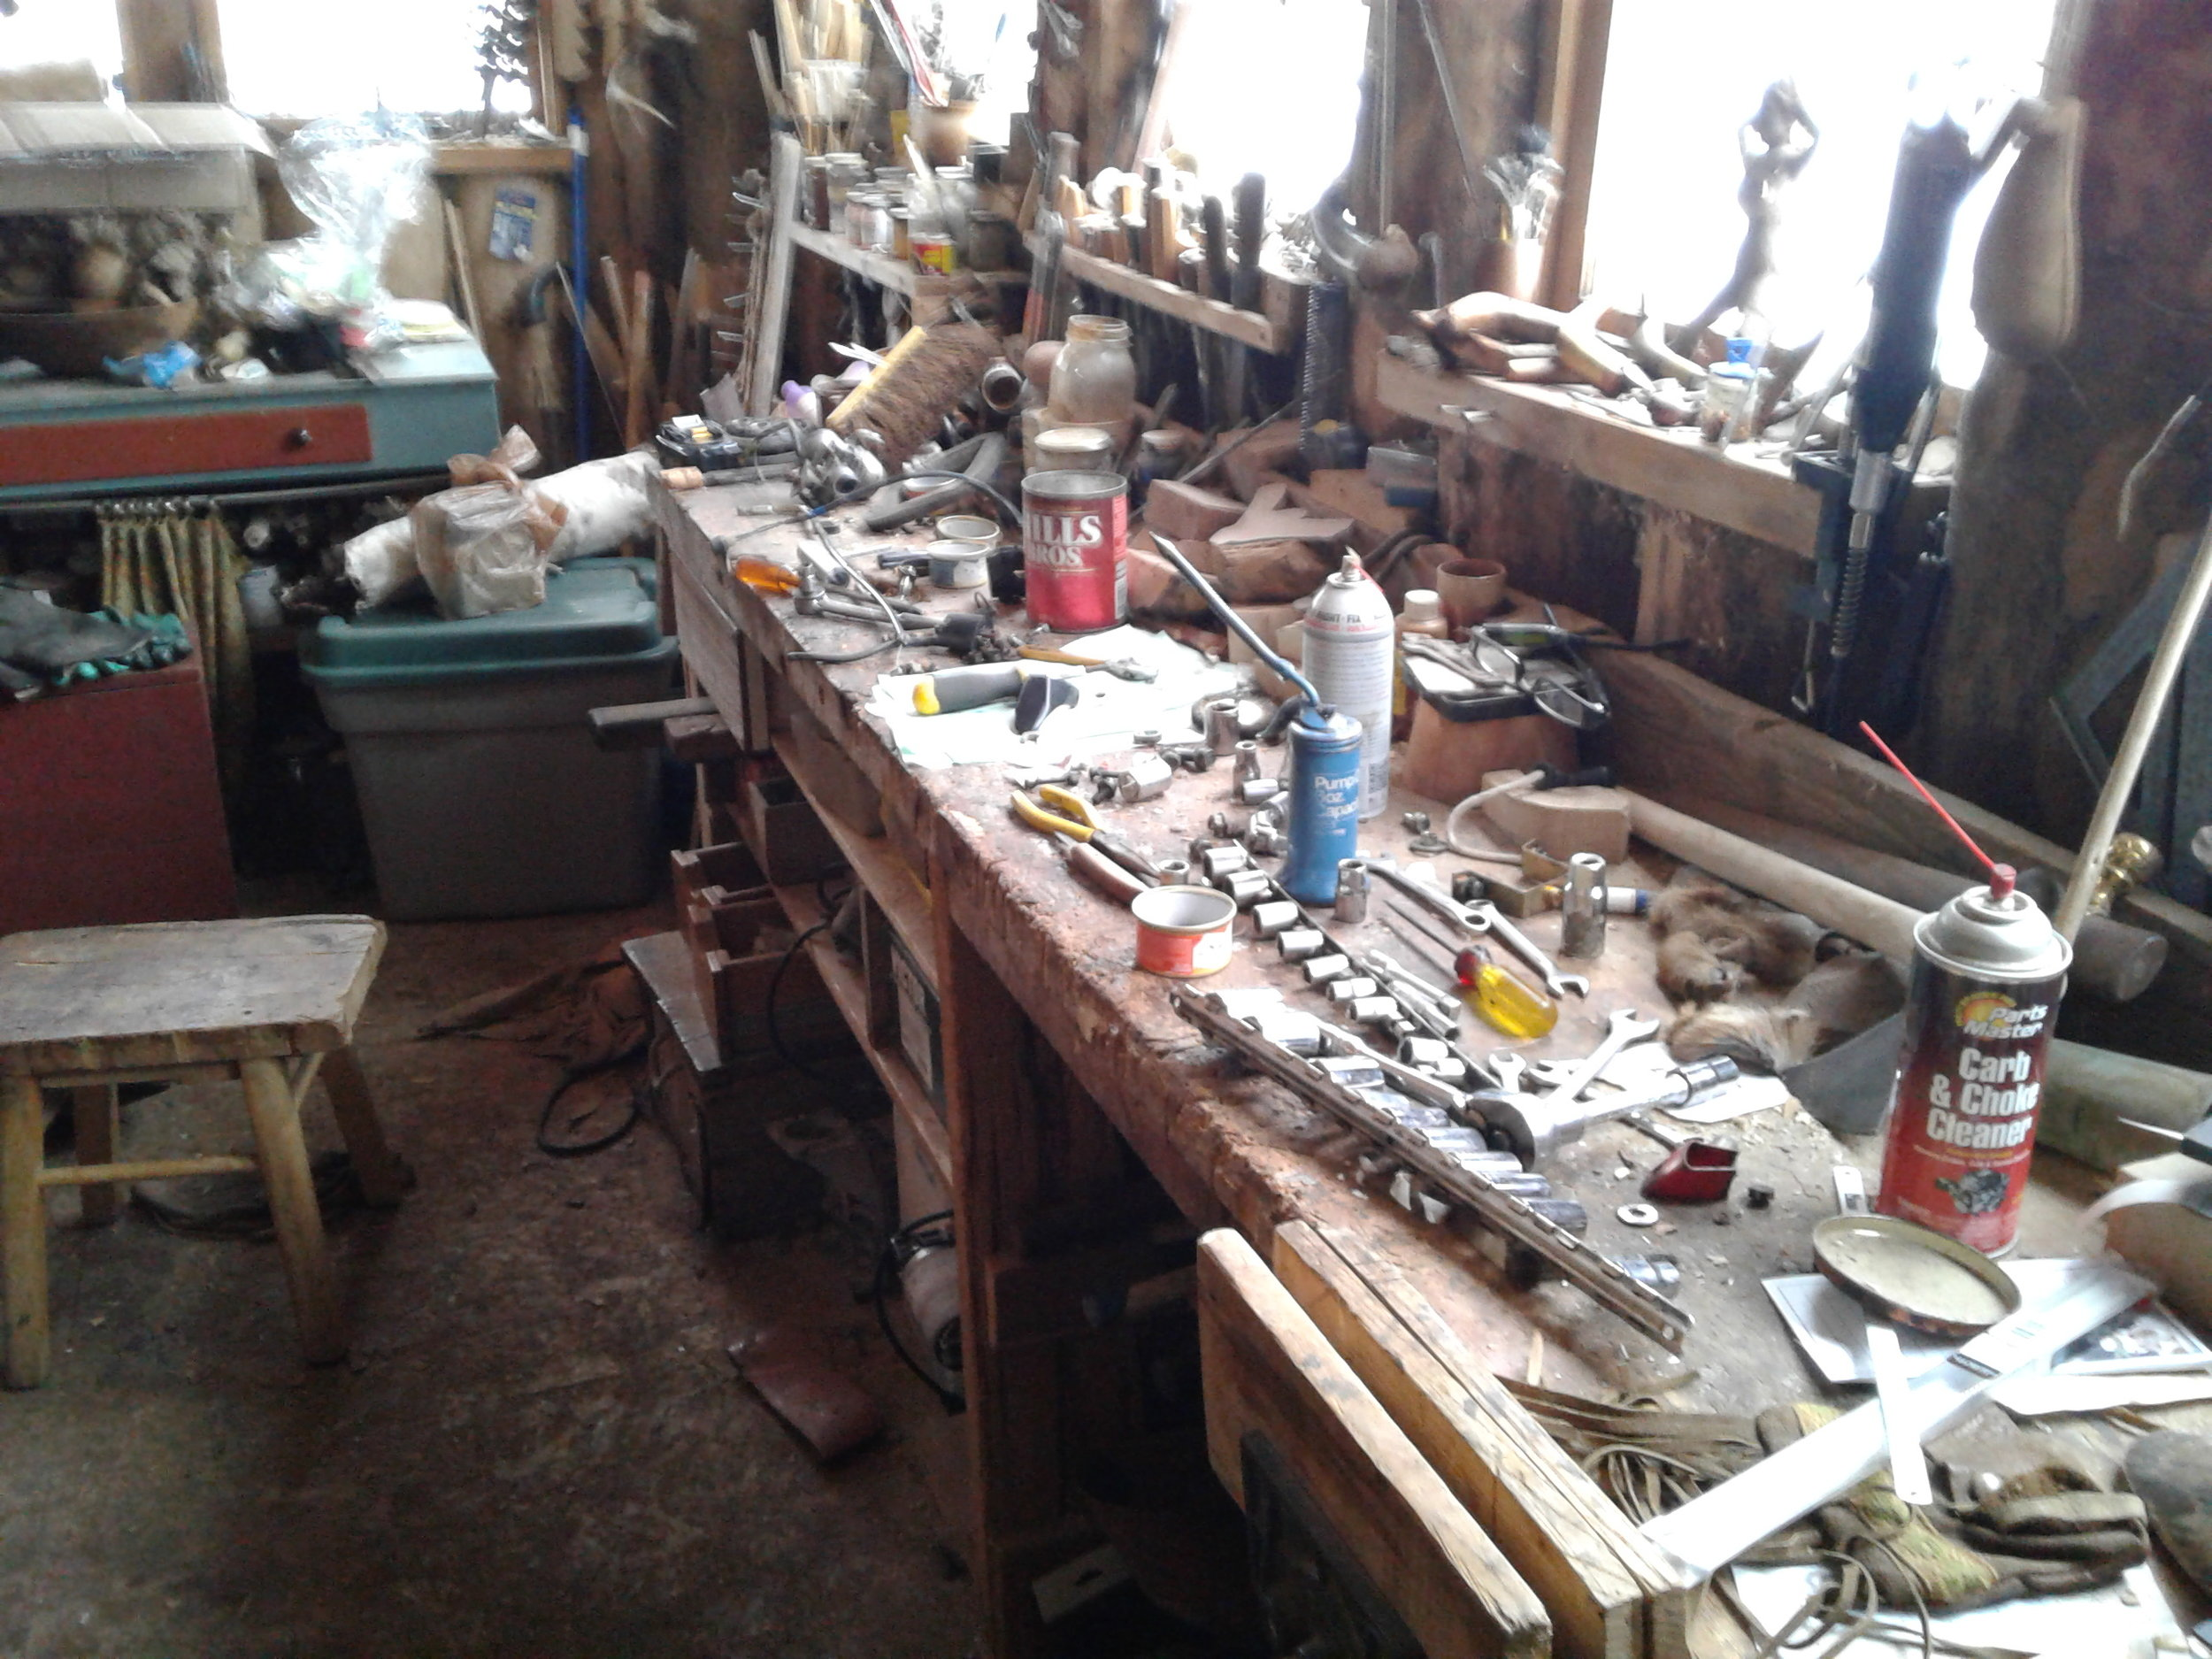 These are the tools we used to disassemble and reassemble the snowmobiles, a pretty busy place.